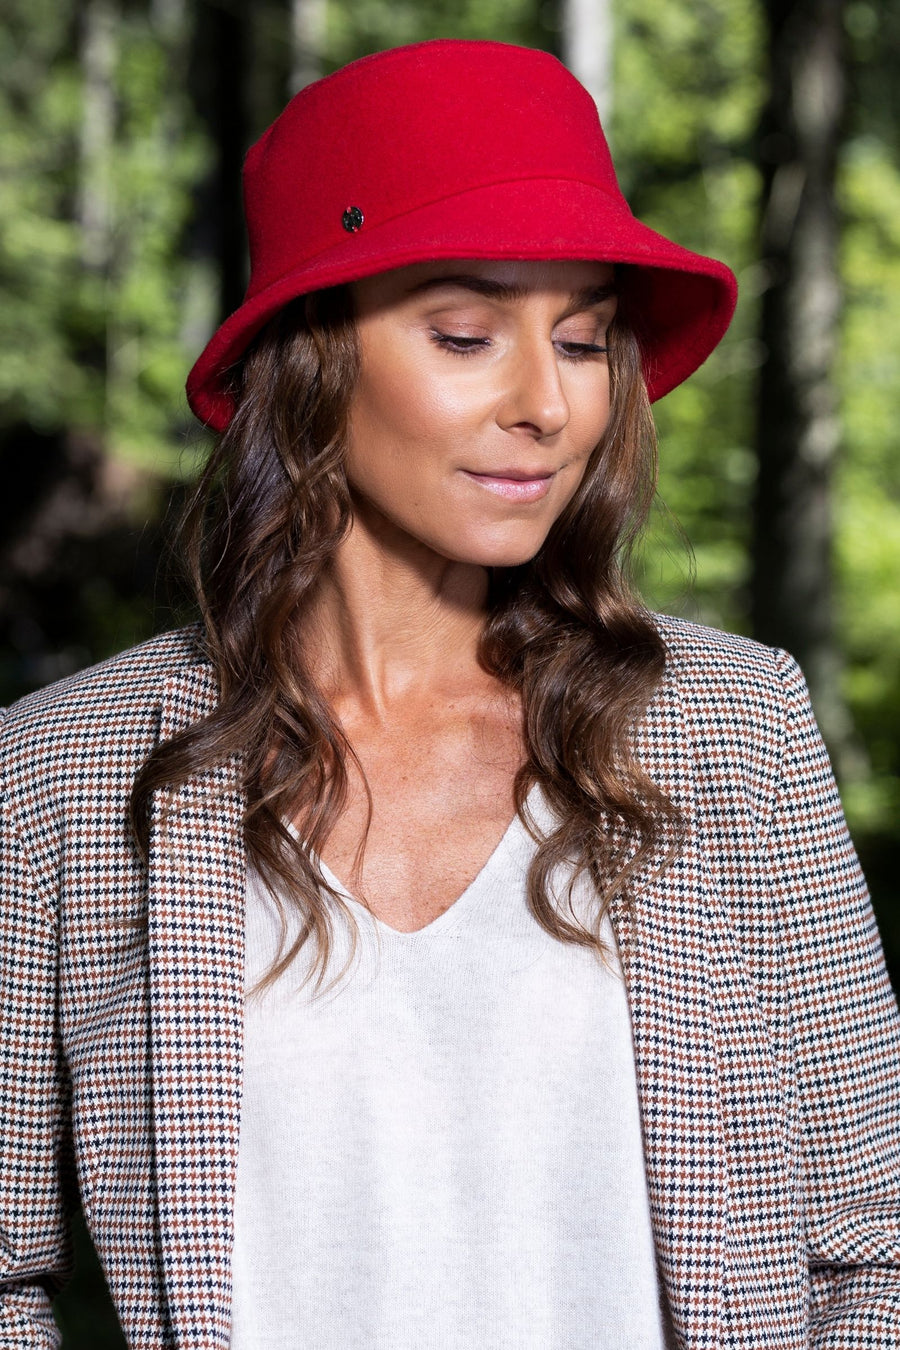 Janni Plain-AW20-KN Collection-Red-59-KN Kati Niemi